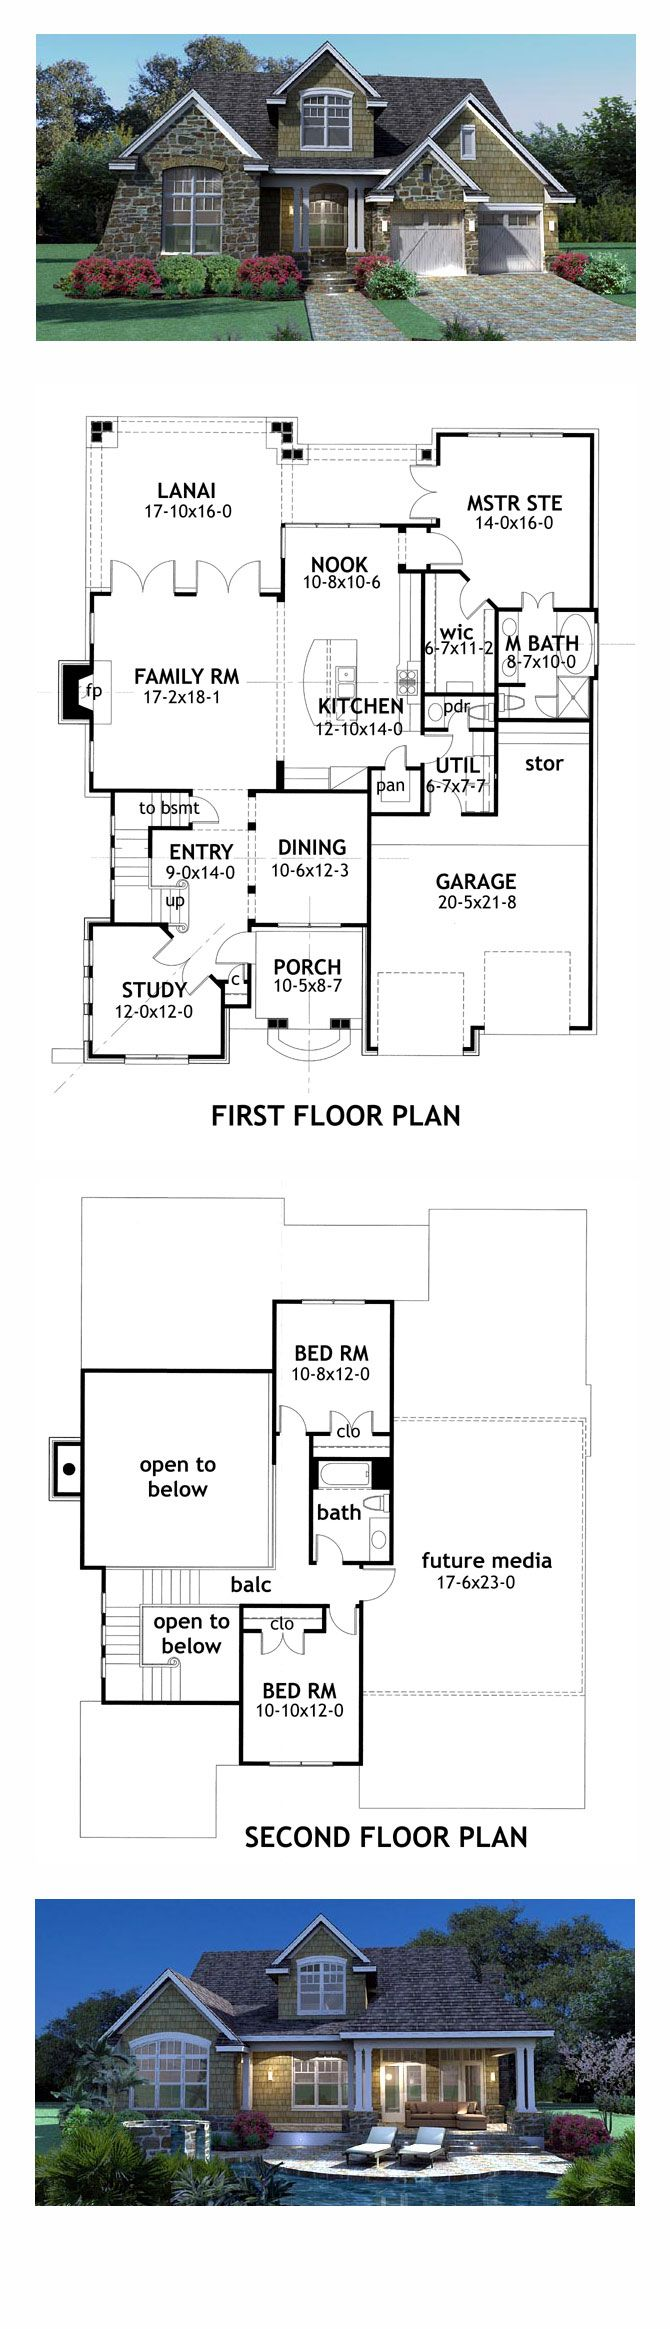 Craftsman House Plan 65868 | Total Living Area: 2143 sq. ft., 3 bedrooms and 2.5 bathrooms. #craftsmanhome